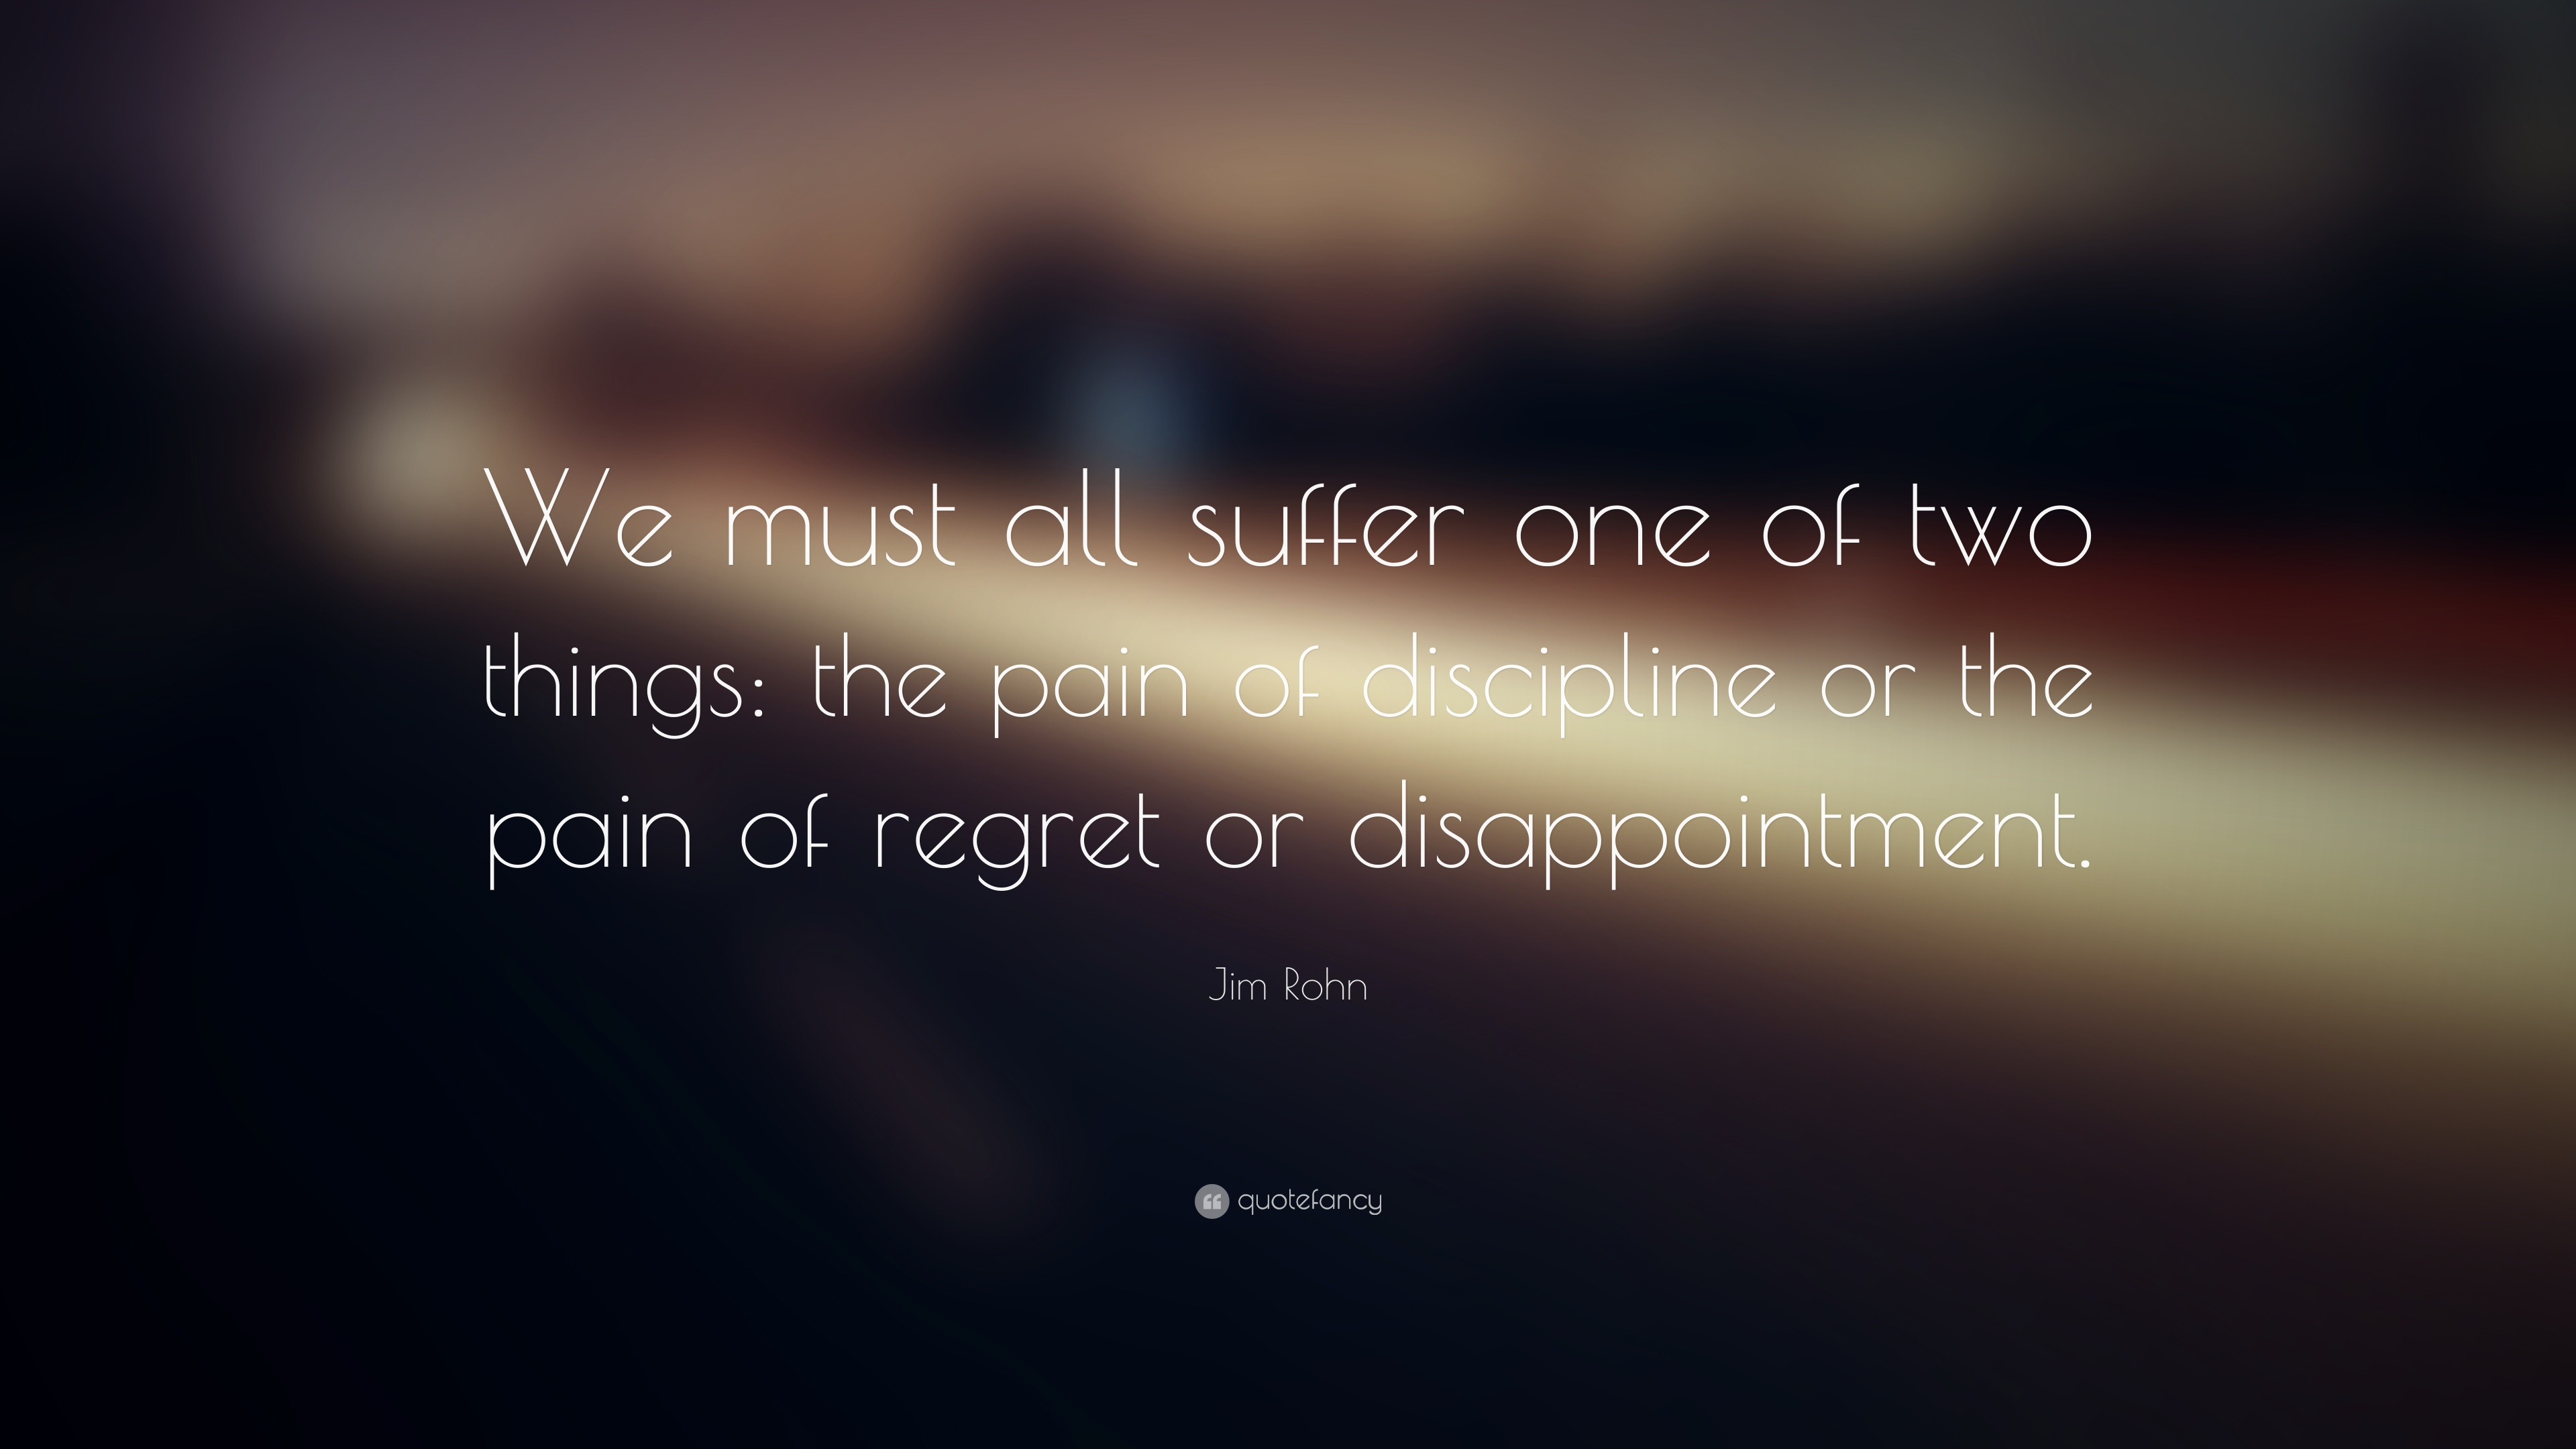 Never Lose Hope Quotes Wallpaper Jim Rohn Quote We Must All Suffer One Of Two Things The